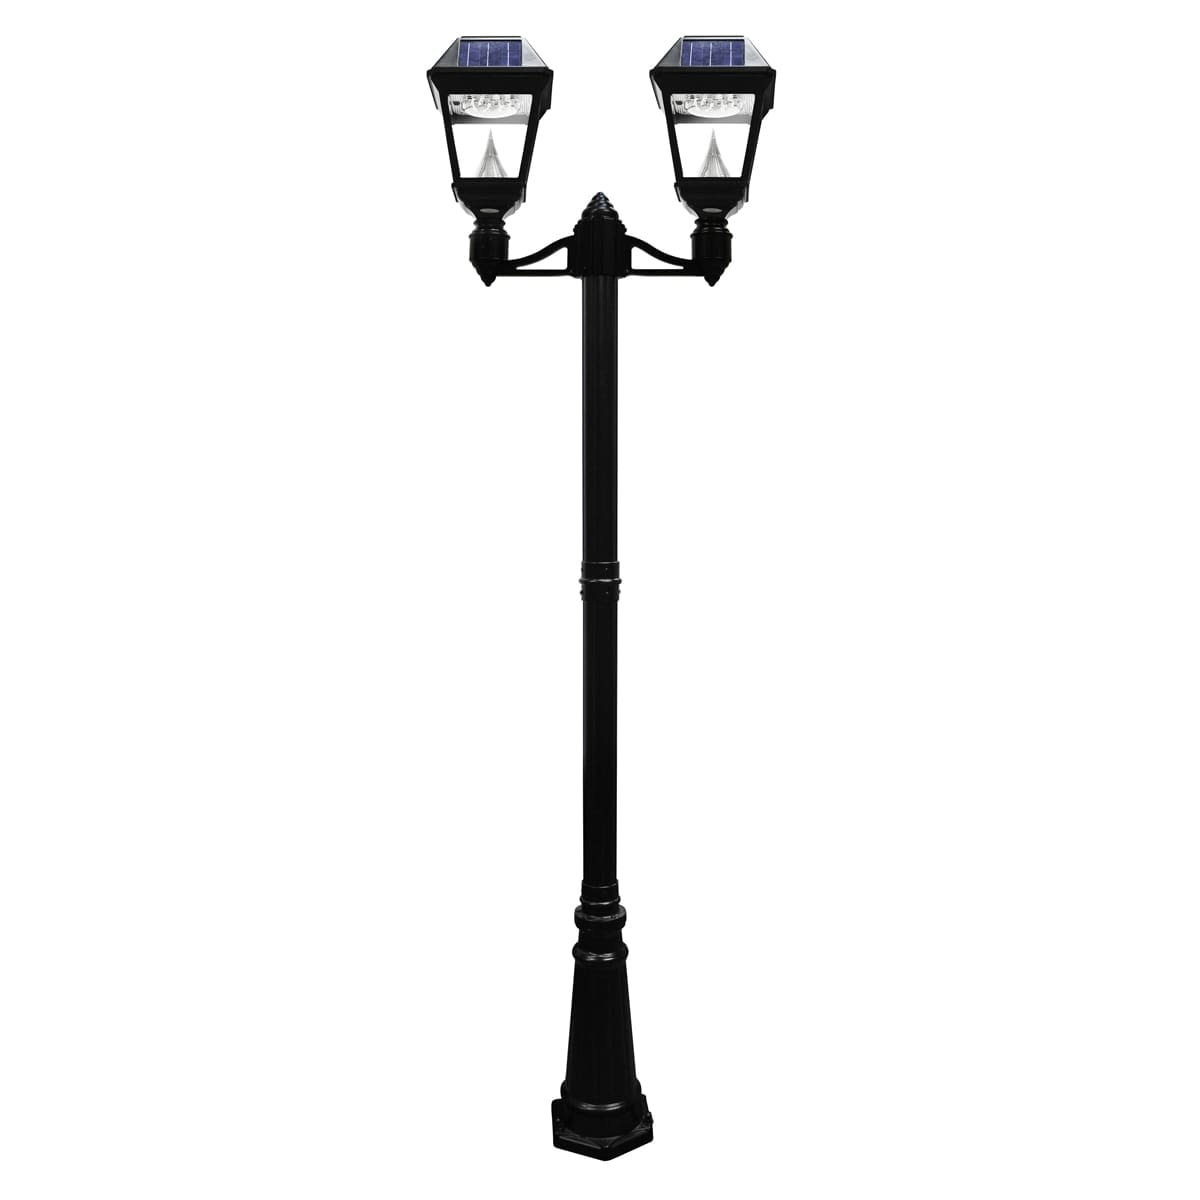 Gama Sonic Imperial II Series – Double Solar Lamp and Lamp Post GS-97ND